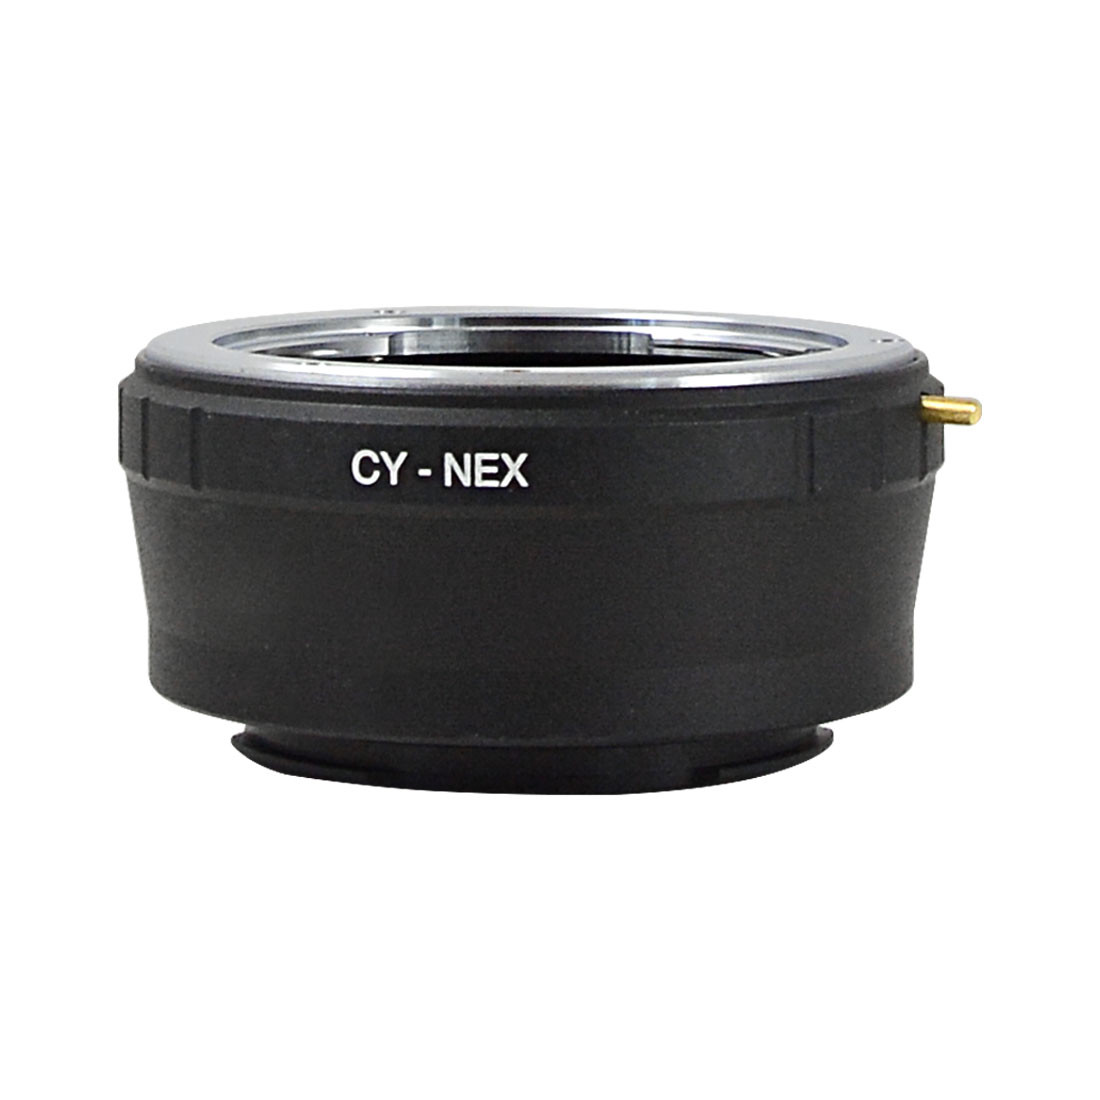 MENGS® CY-NEX lens mount adapter ring aluminum and copper material for Contax CY Lens to Sony NEX-3 NEX-5 camera body